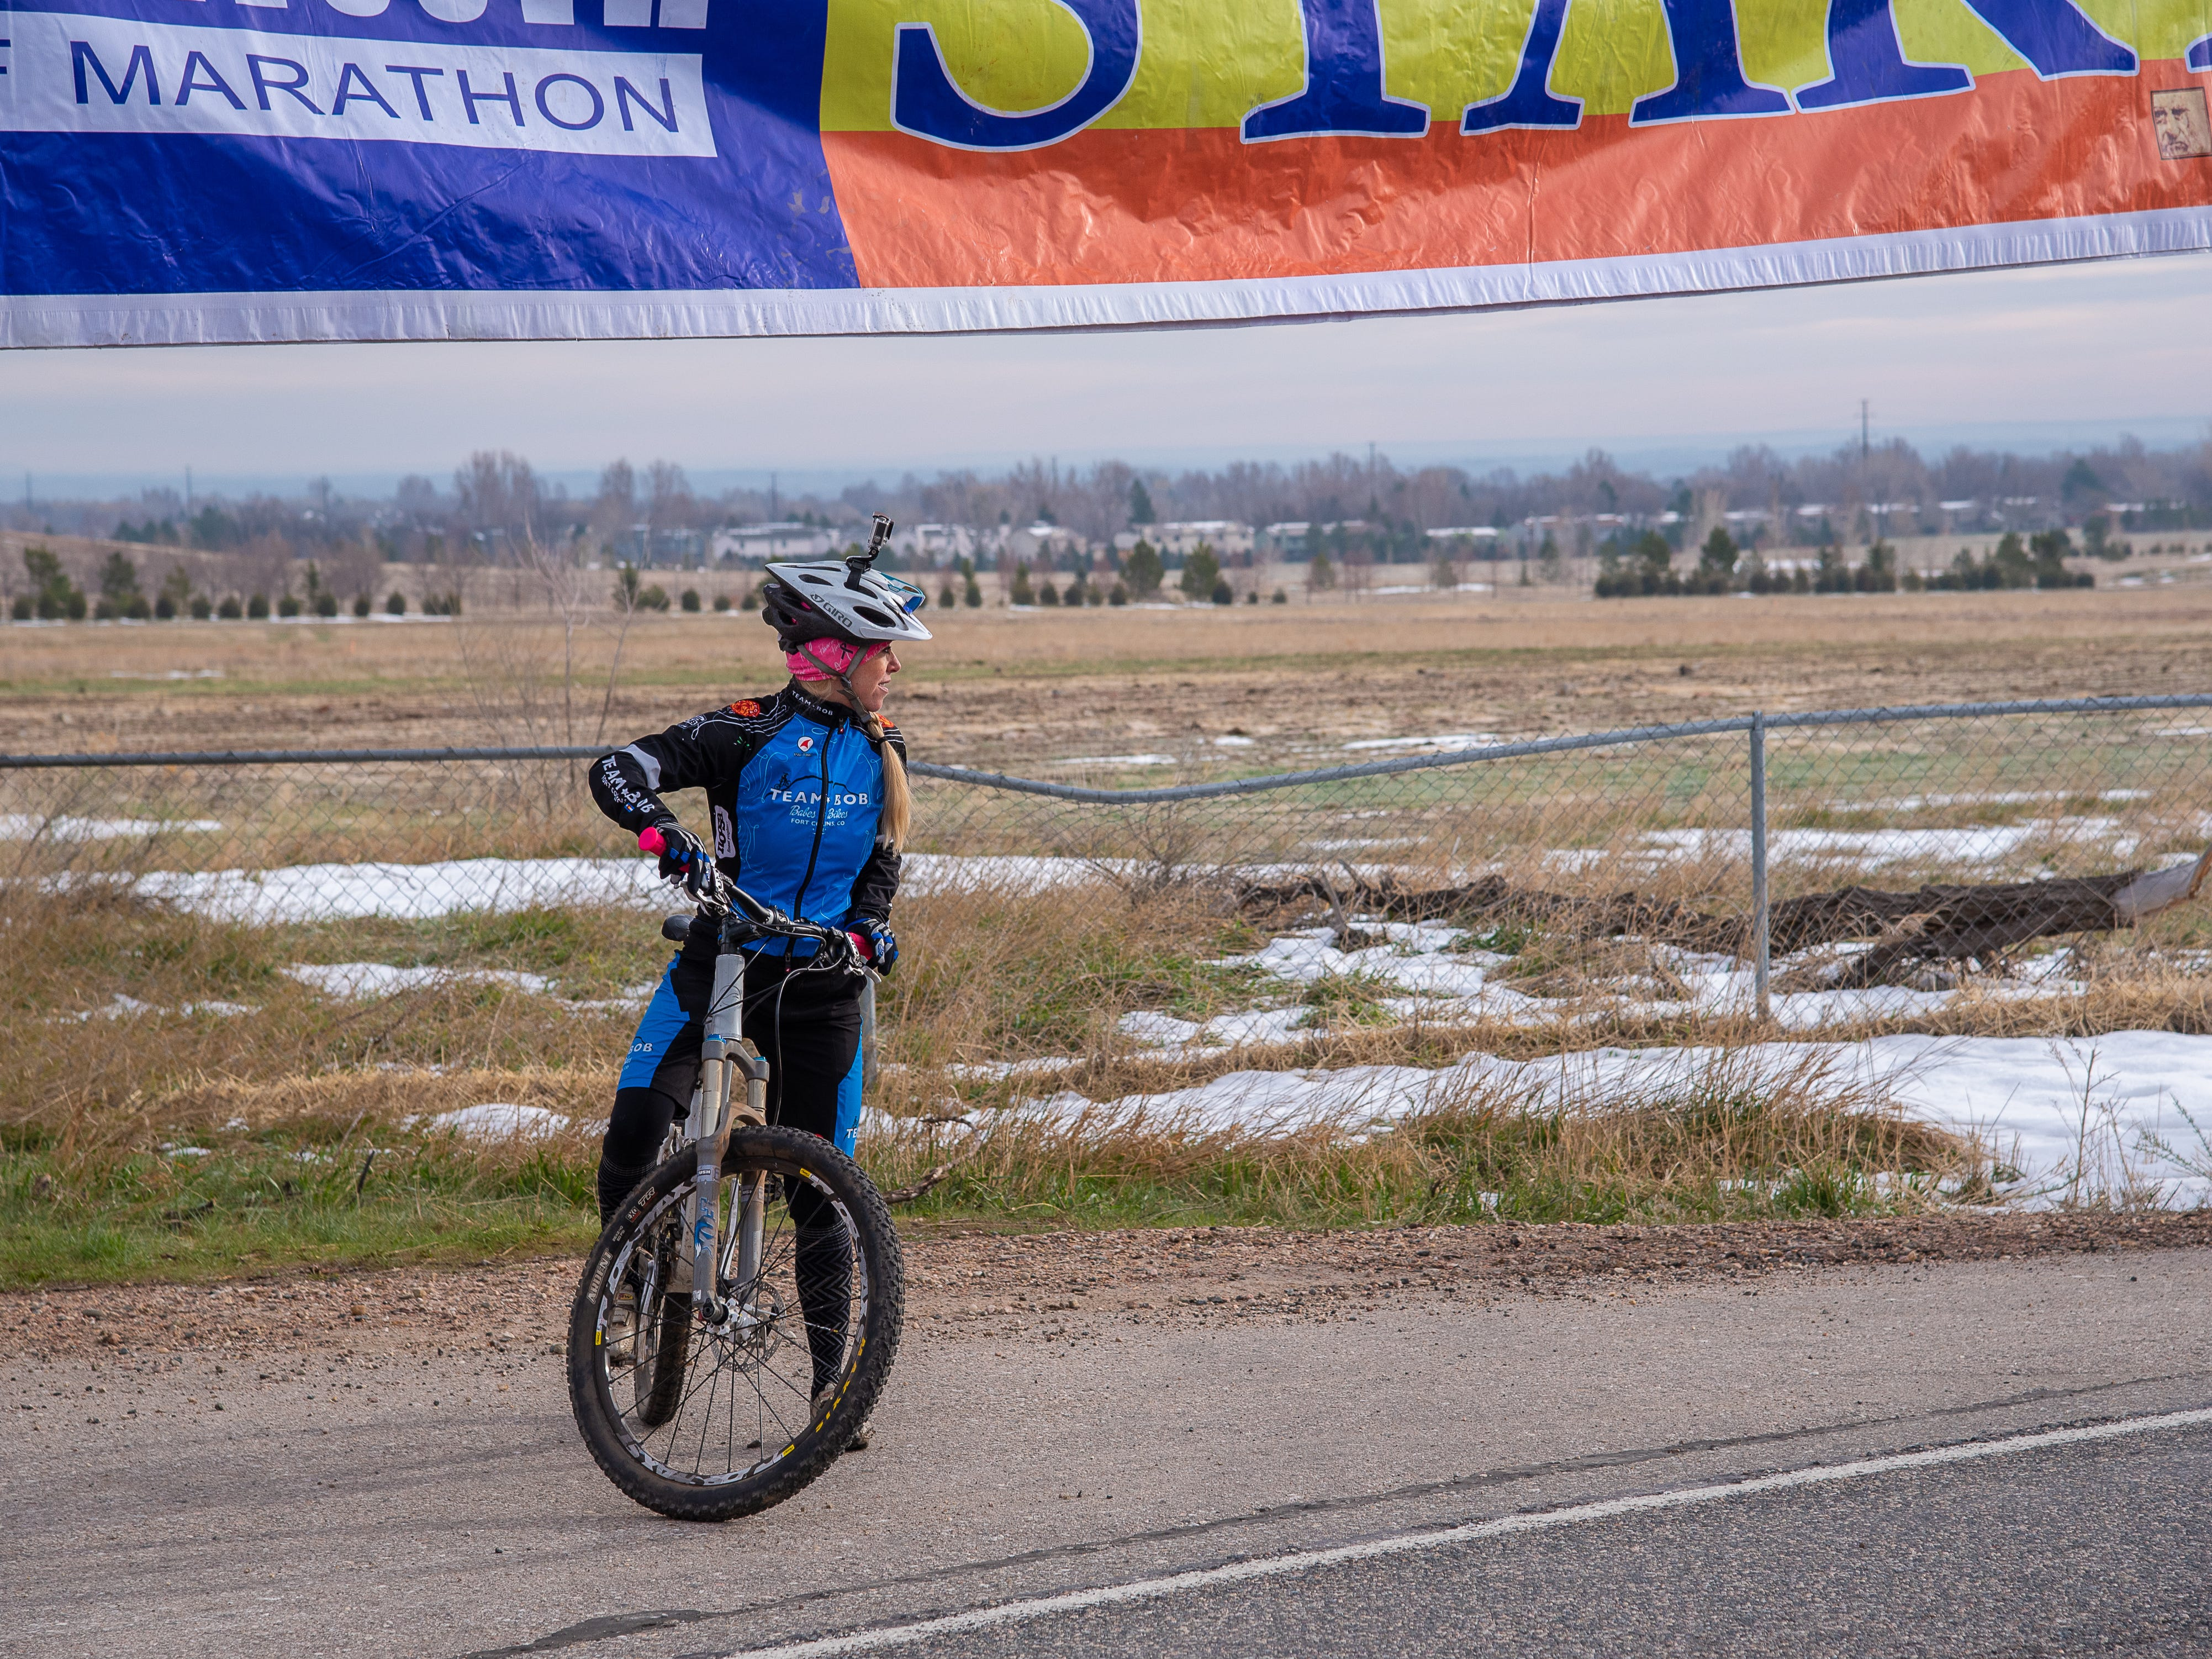 Kimber Korsgaard, bike lead for women participants in the Horsetooth Half Marathon, prepares to start the course on Sunday, April 14, 2019, in Fort Collins, Colo.